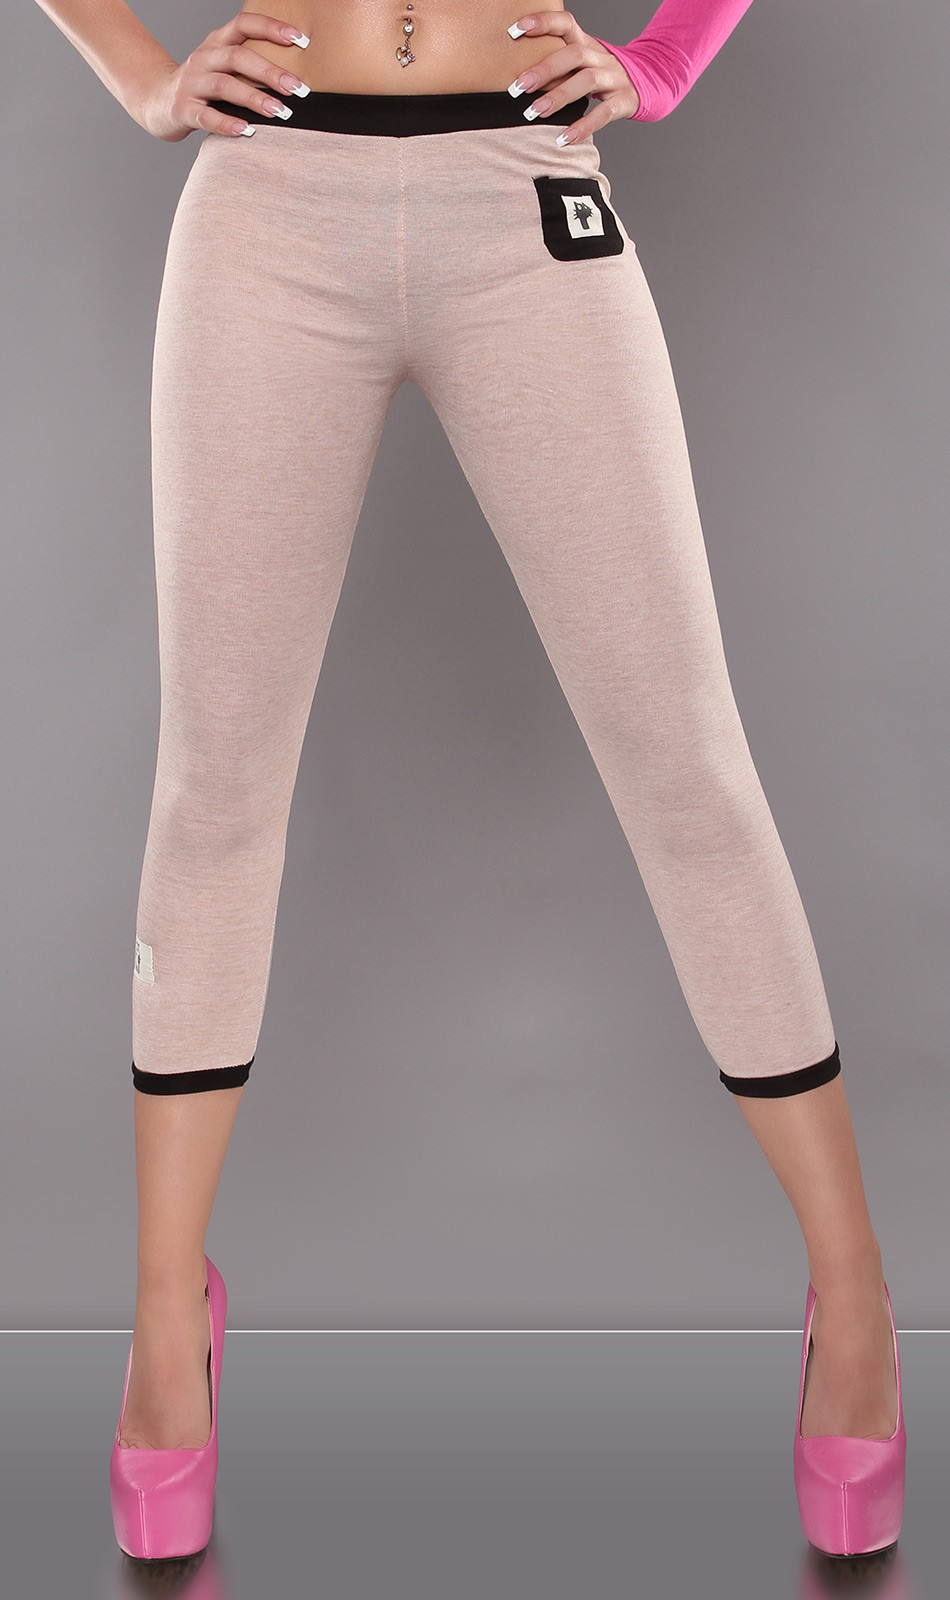 7/8 capri leggings - Bézs (L/XL)